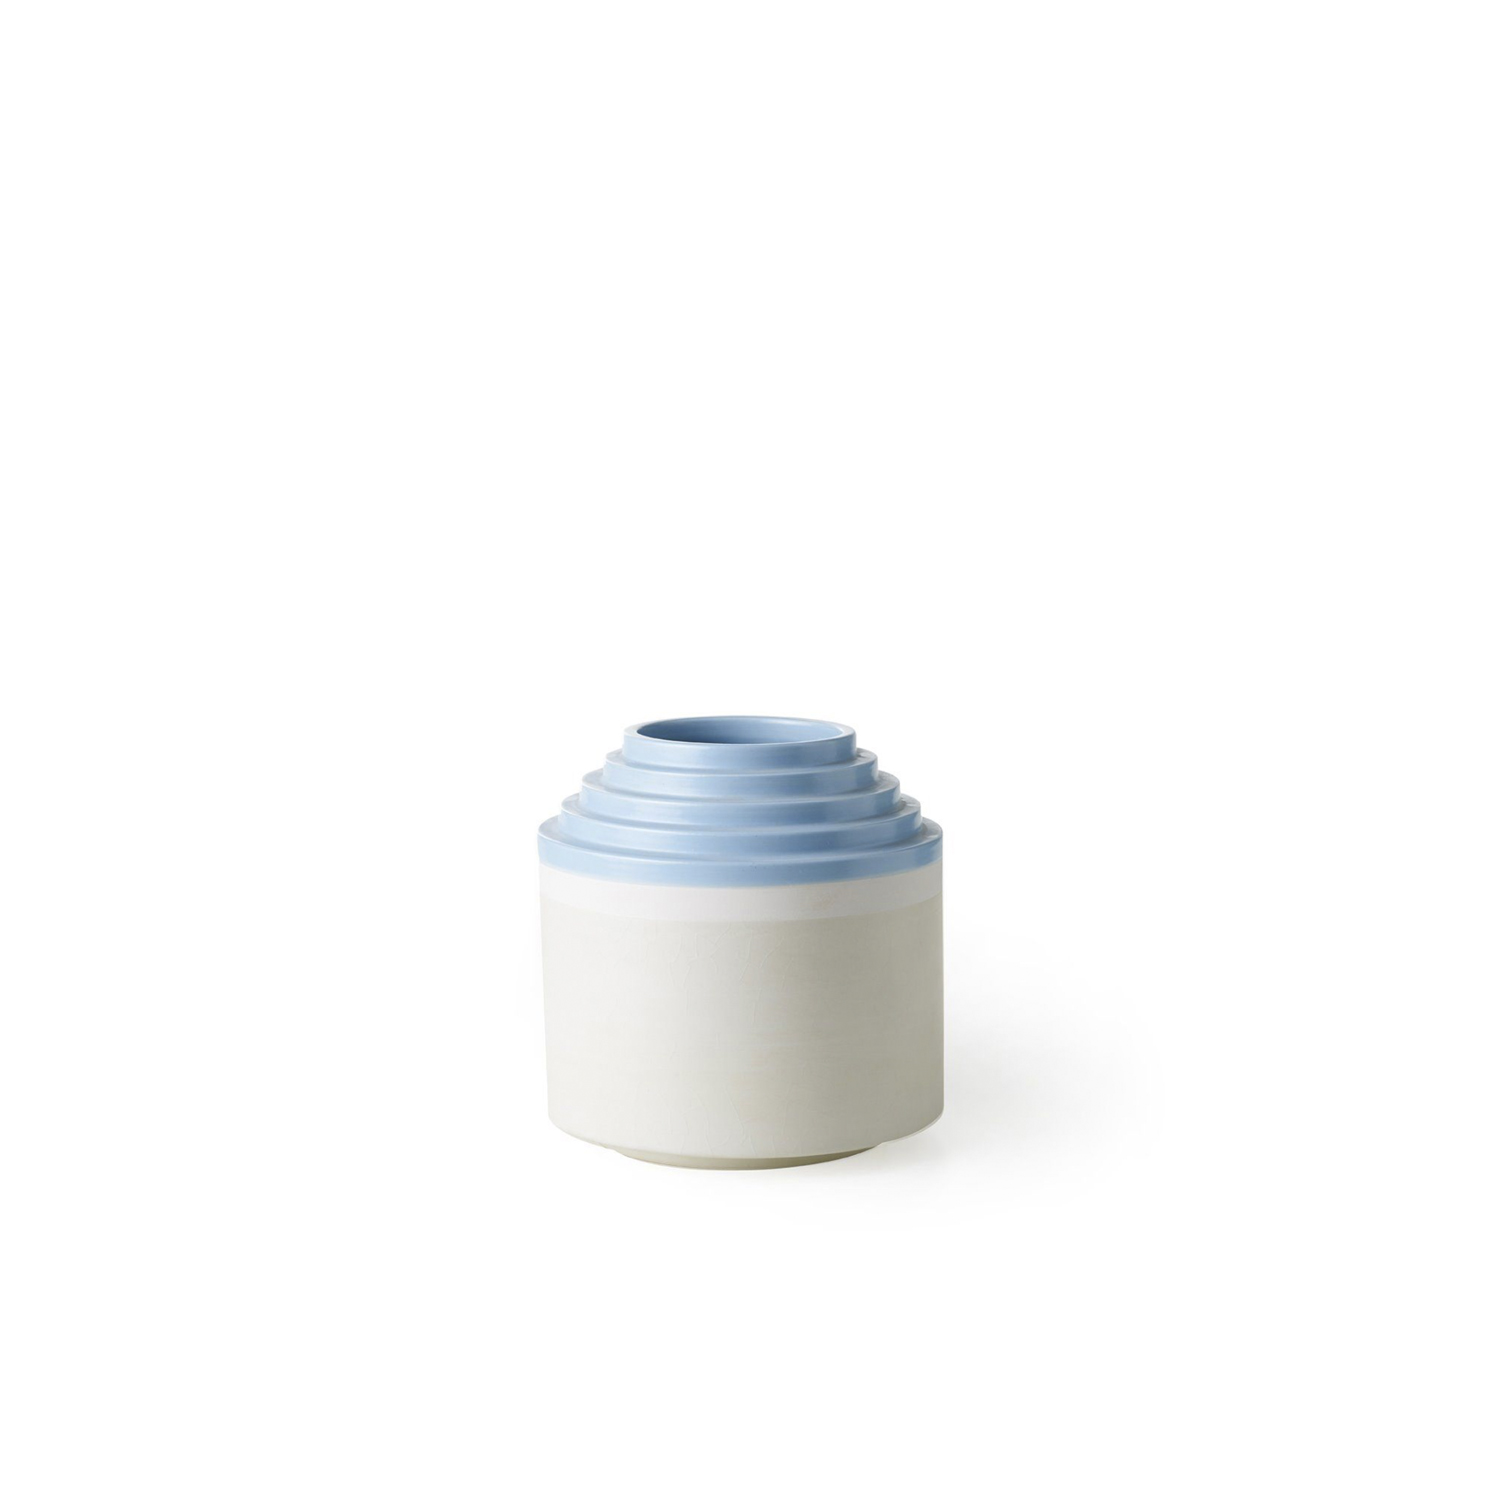 Blue Stripped Rim Vase - Vase with stepped rim. Hand-turned in white clay. Two-tone matt white and light blue glaze.